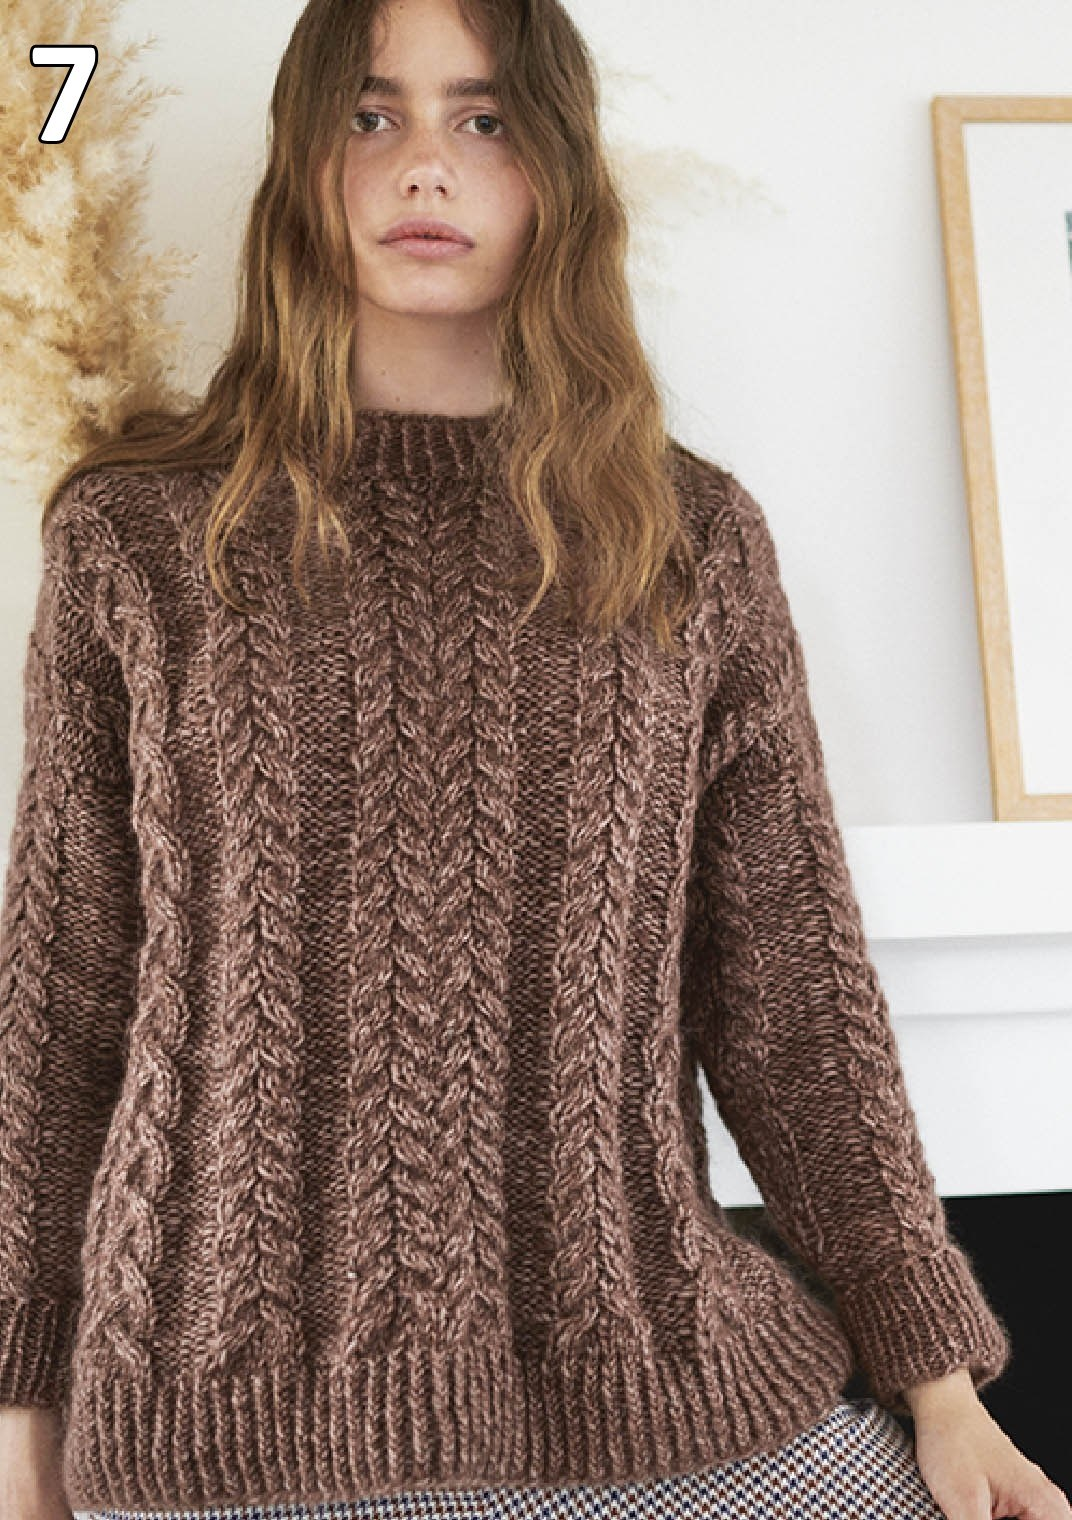 Sandnes strikkehæfte 1912 model 7 Flettegenser (sweater)